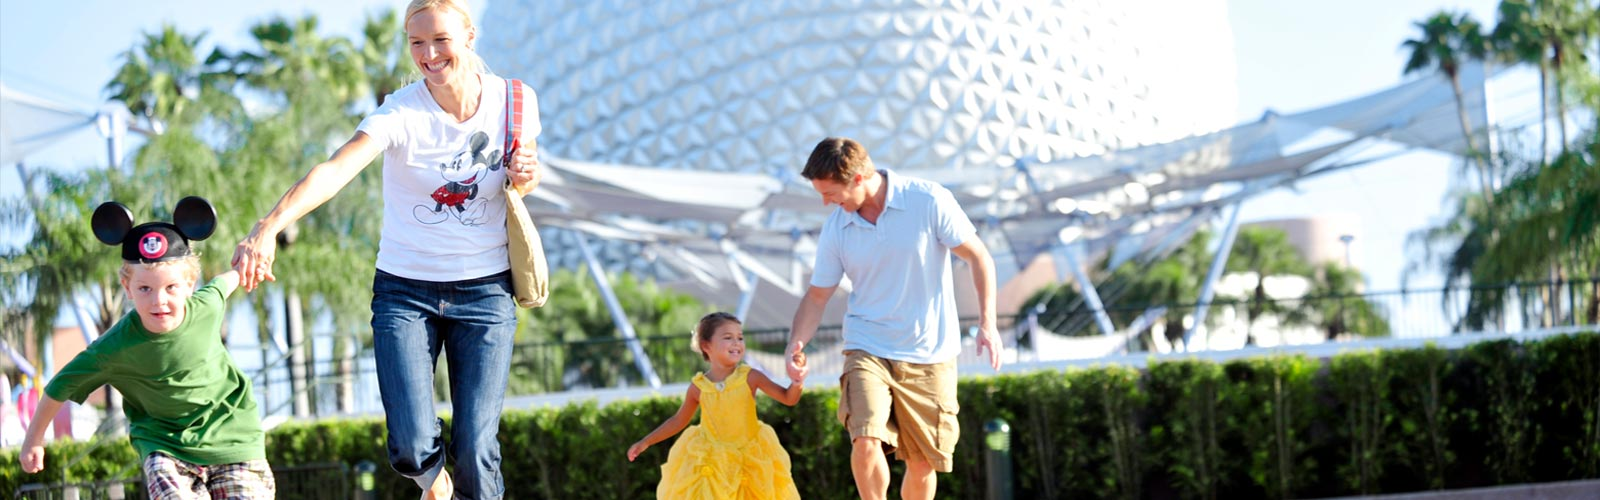 family running in Epcot park